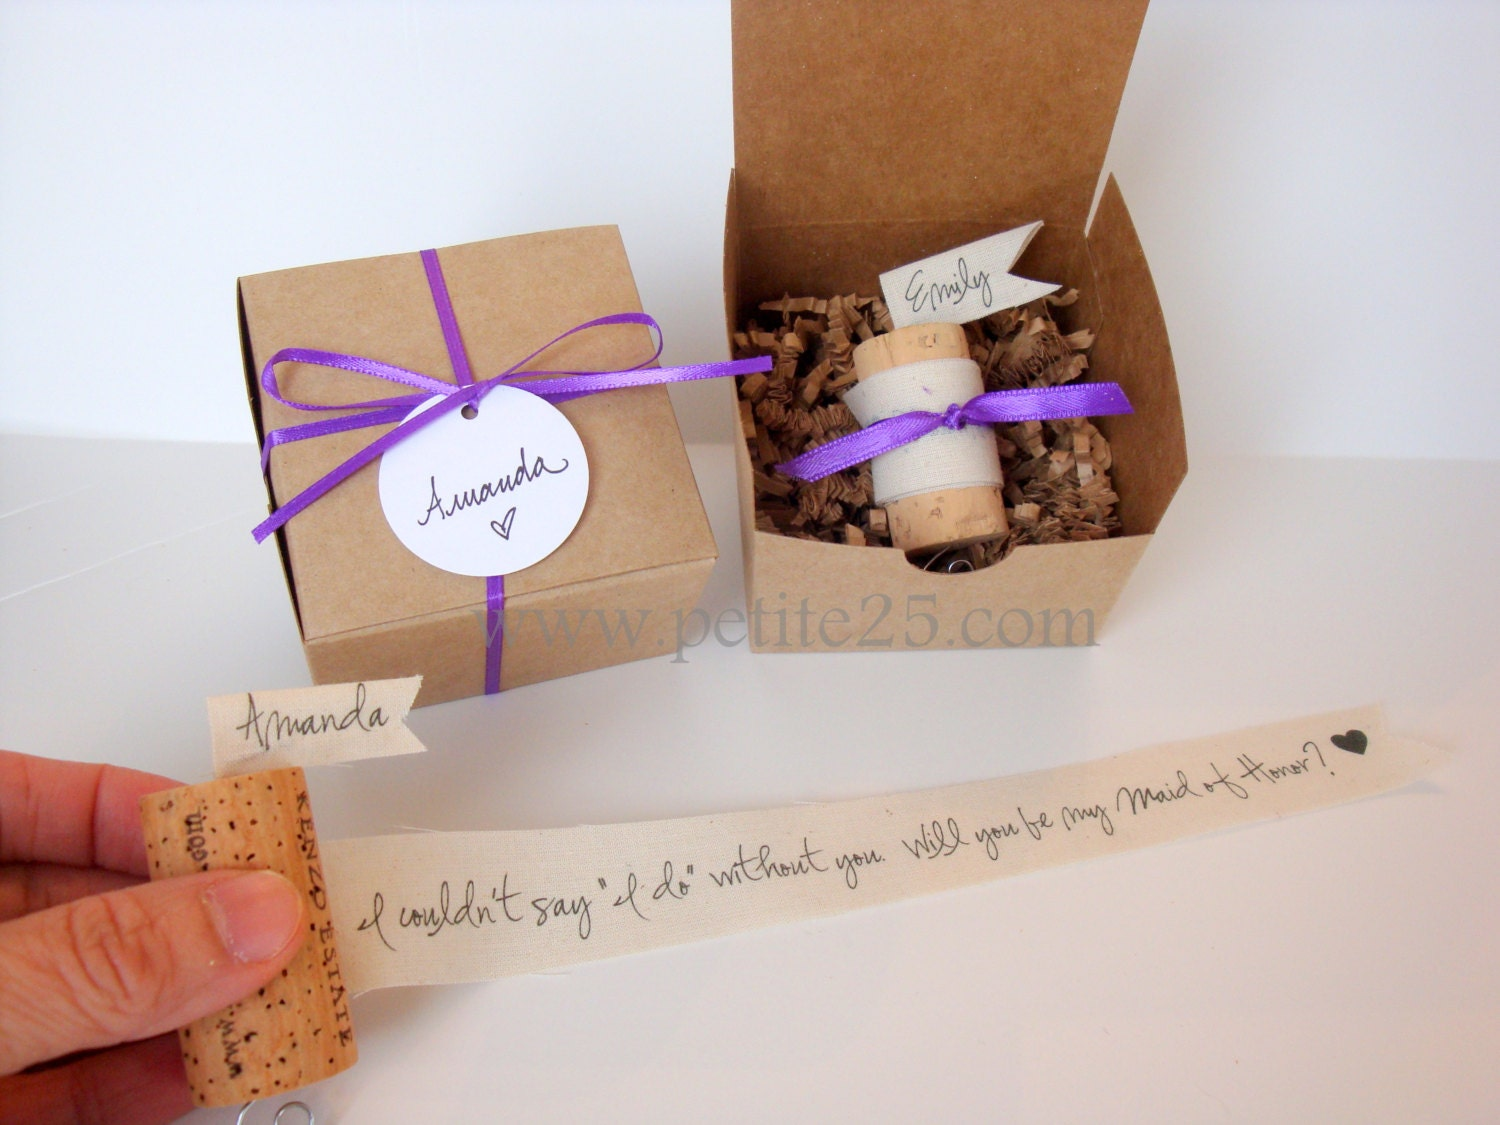 One 1 Wine Cork Bridesmaid Proposal Will you be my